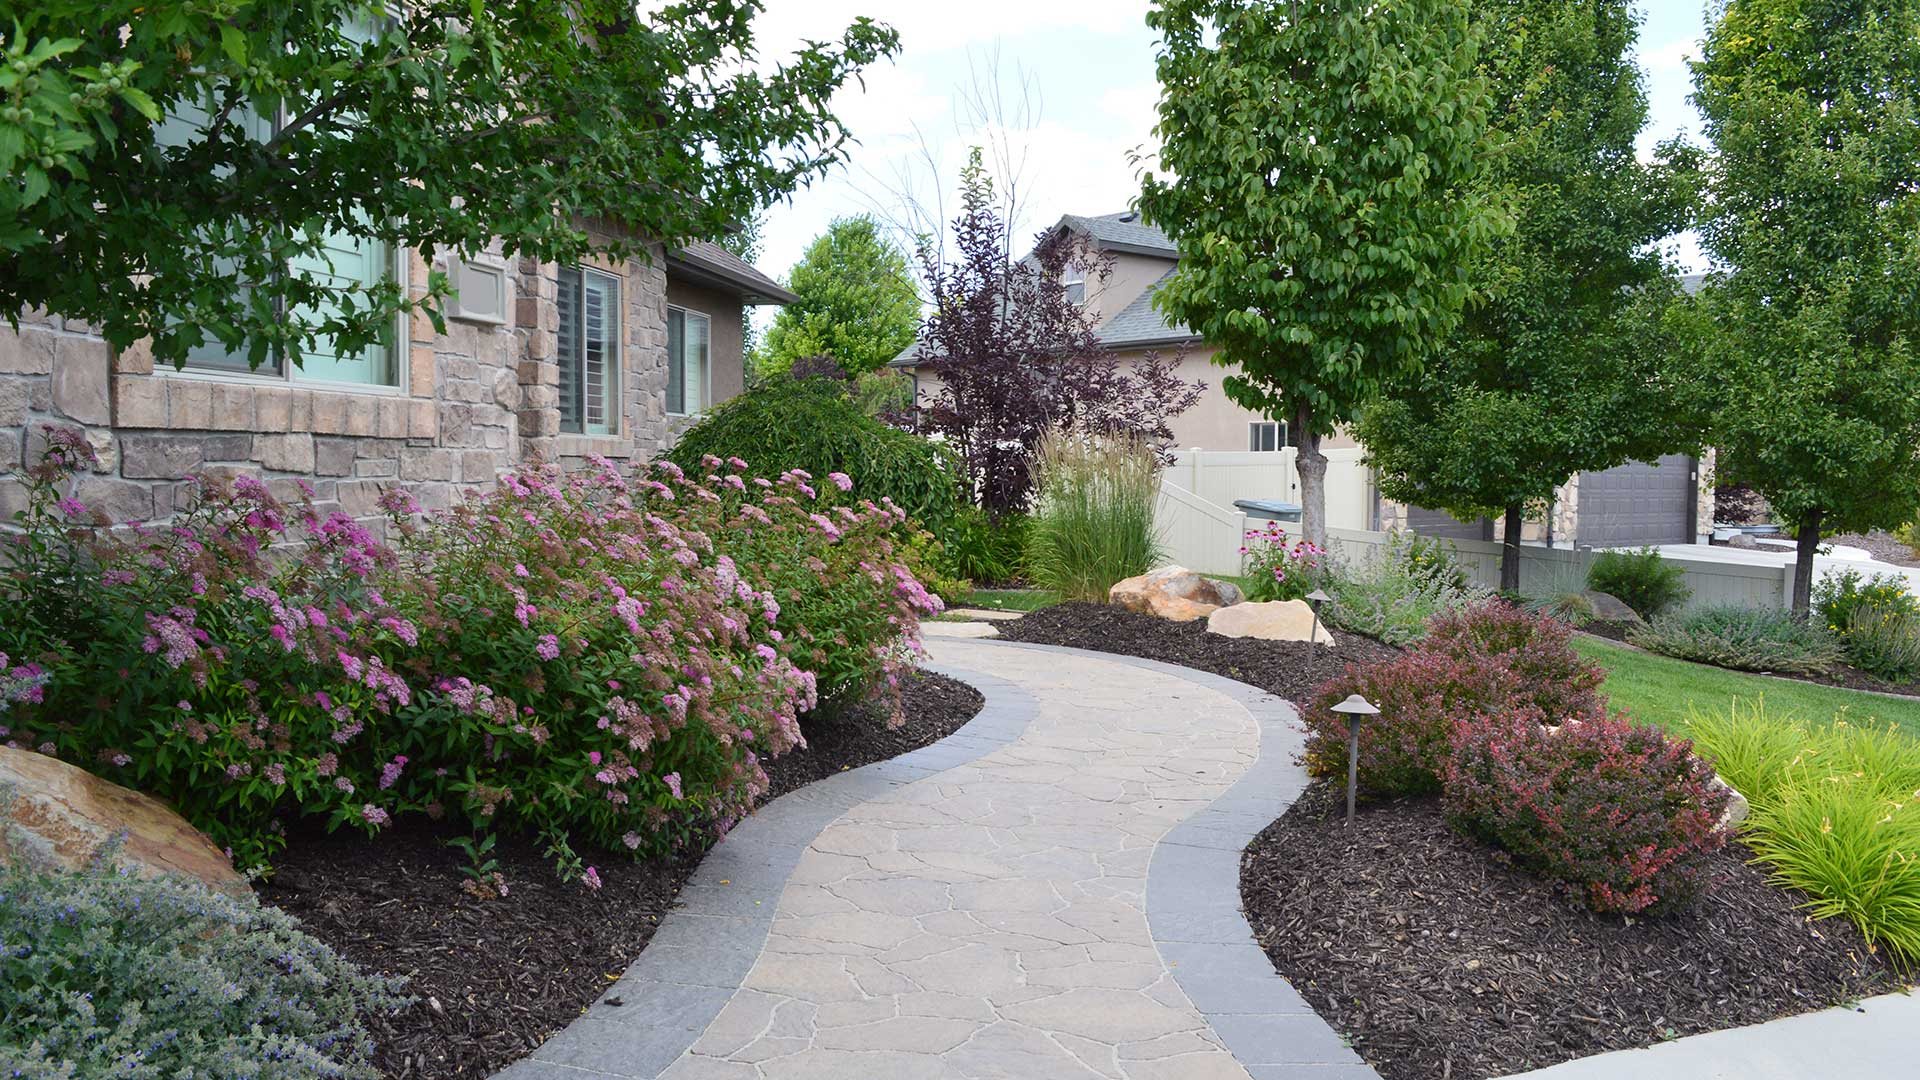 Professionally designed landscaping with mature annuals in front of a home in Salt Lake City, UT.